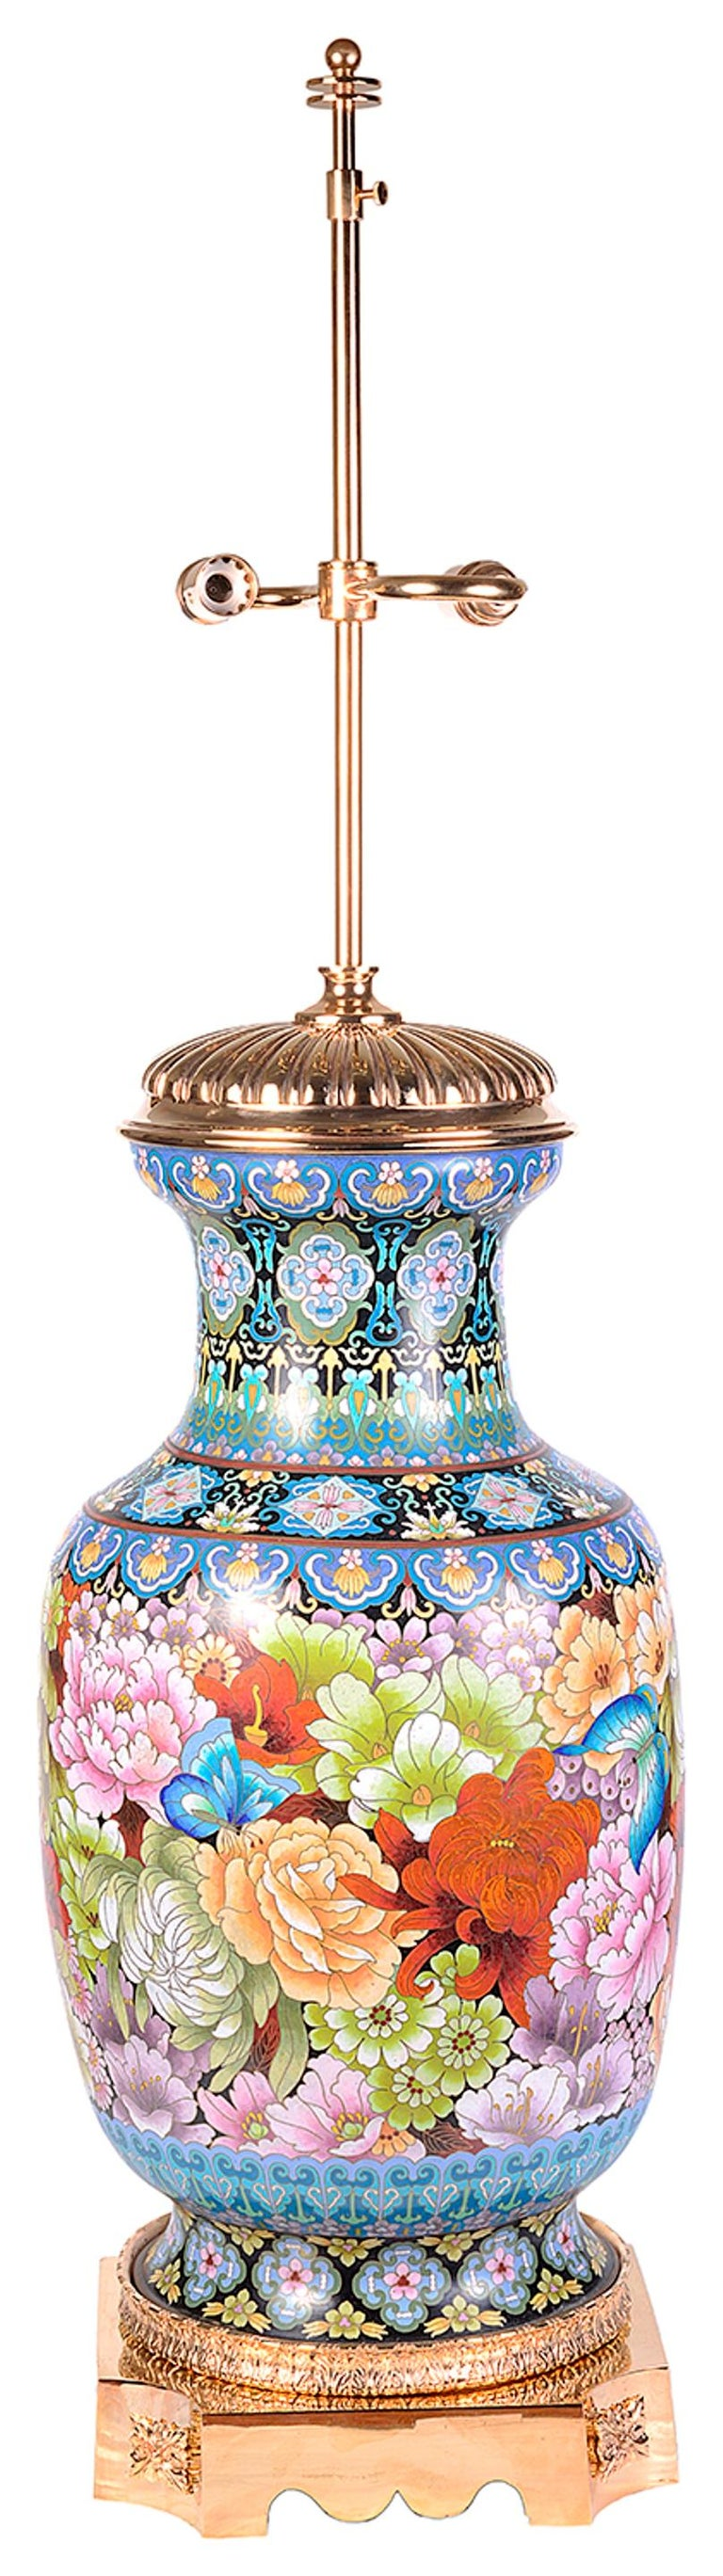 Chinese Pair of Cloisonne Enamel Vases/Lamps, circa 1920 For Sale